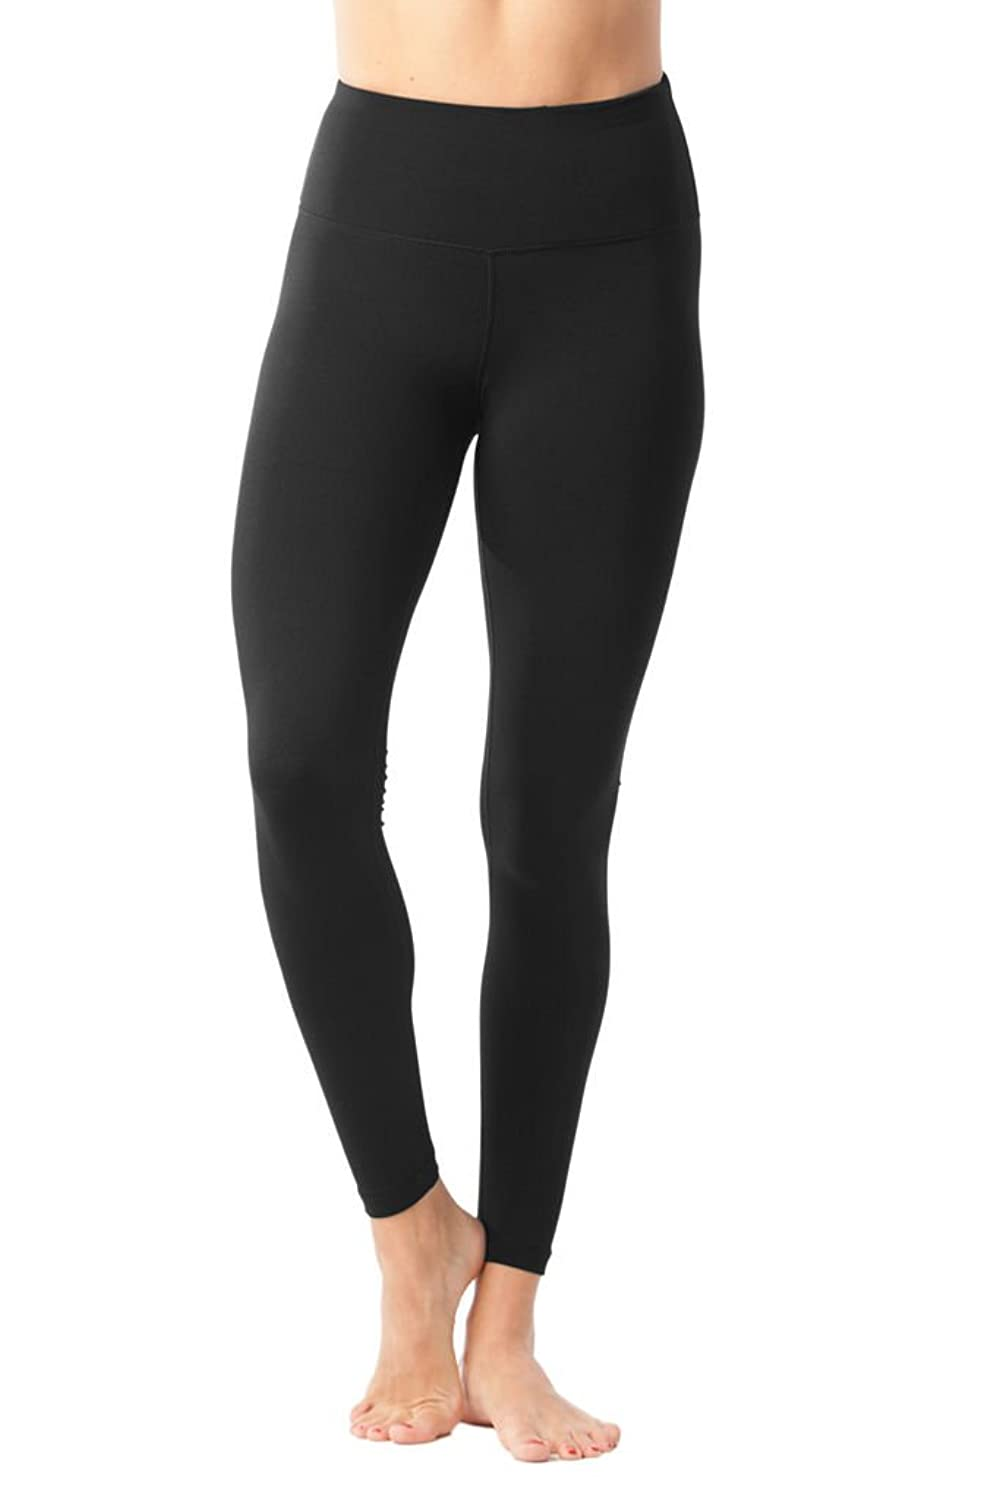 de2946bfdd5273 The High Waist Tummy Control Power Flex Leggings by 90 Degree by Reflex are  the affordable yoga pants whether you're working out in the gym or lounging  at ...